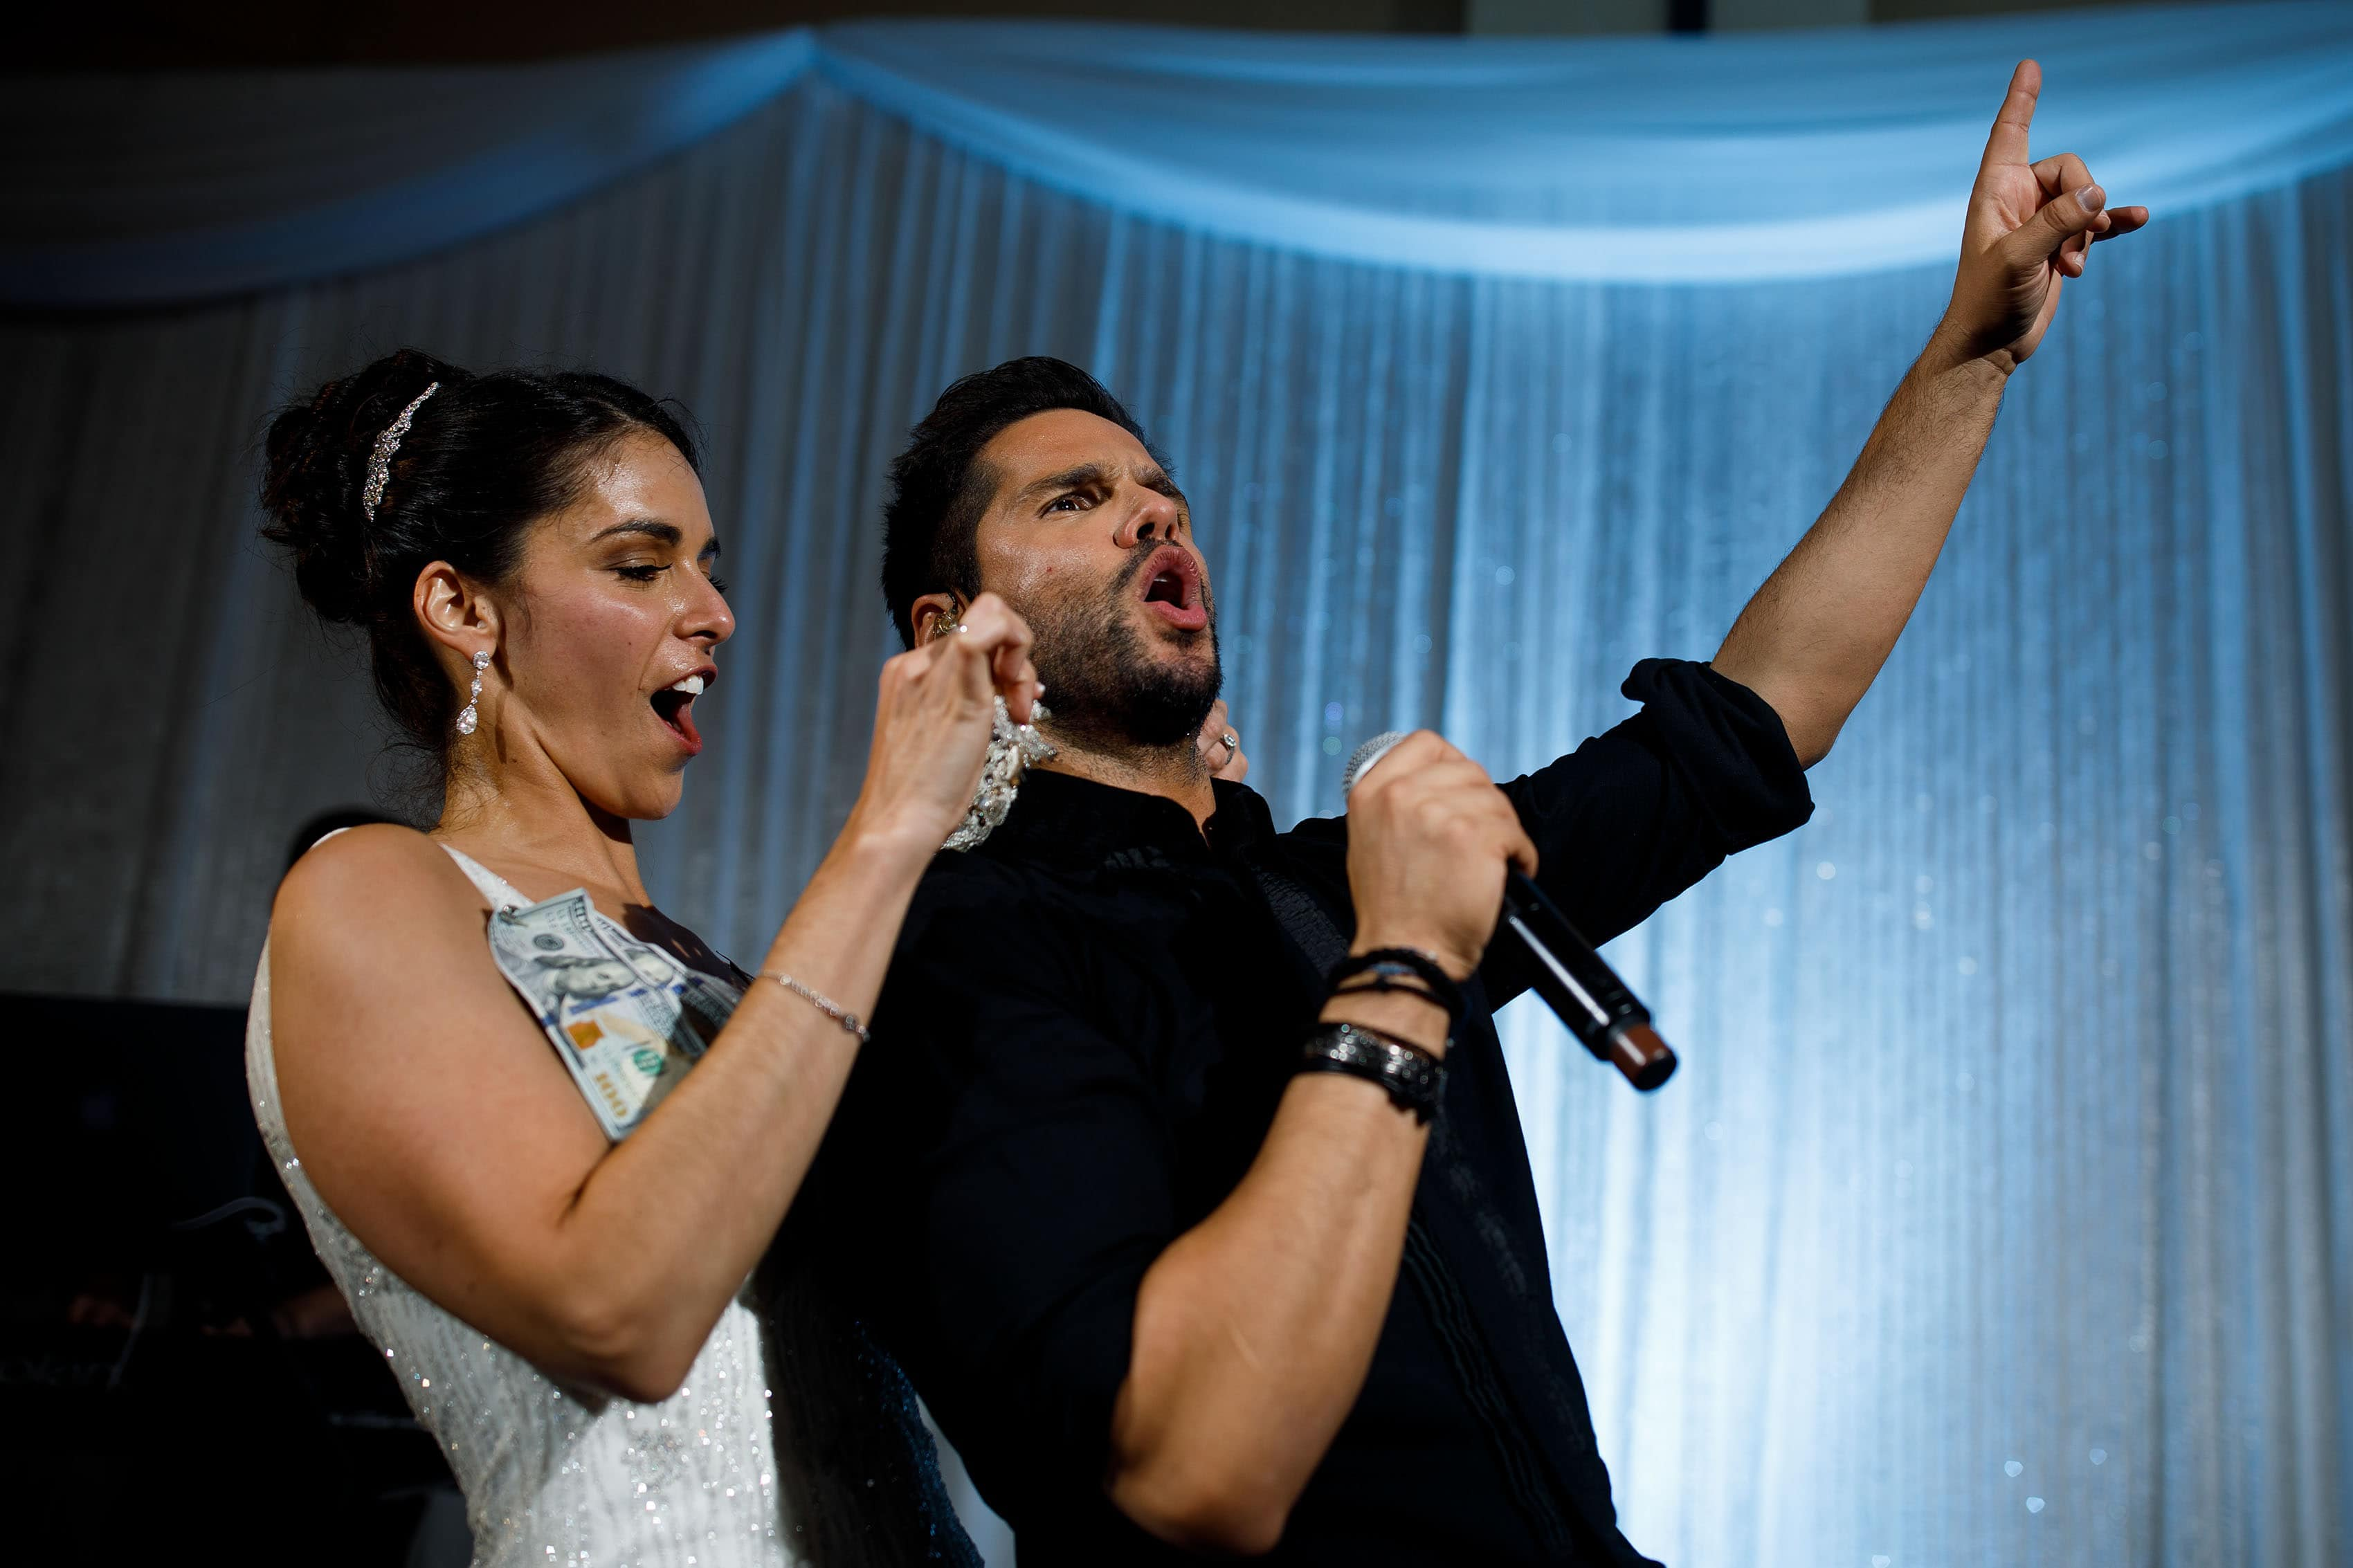 The bride dances on stage as Greek pop artist Giorgos Tsalikis sings during her wedding reception at the Sheraton Albuquerque uptown